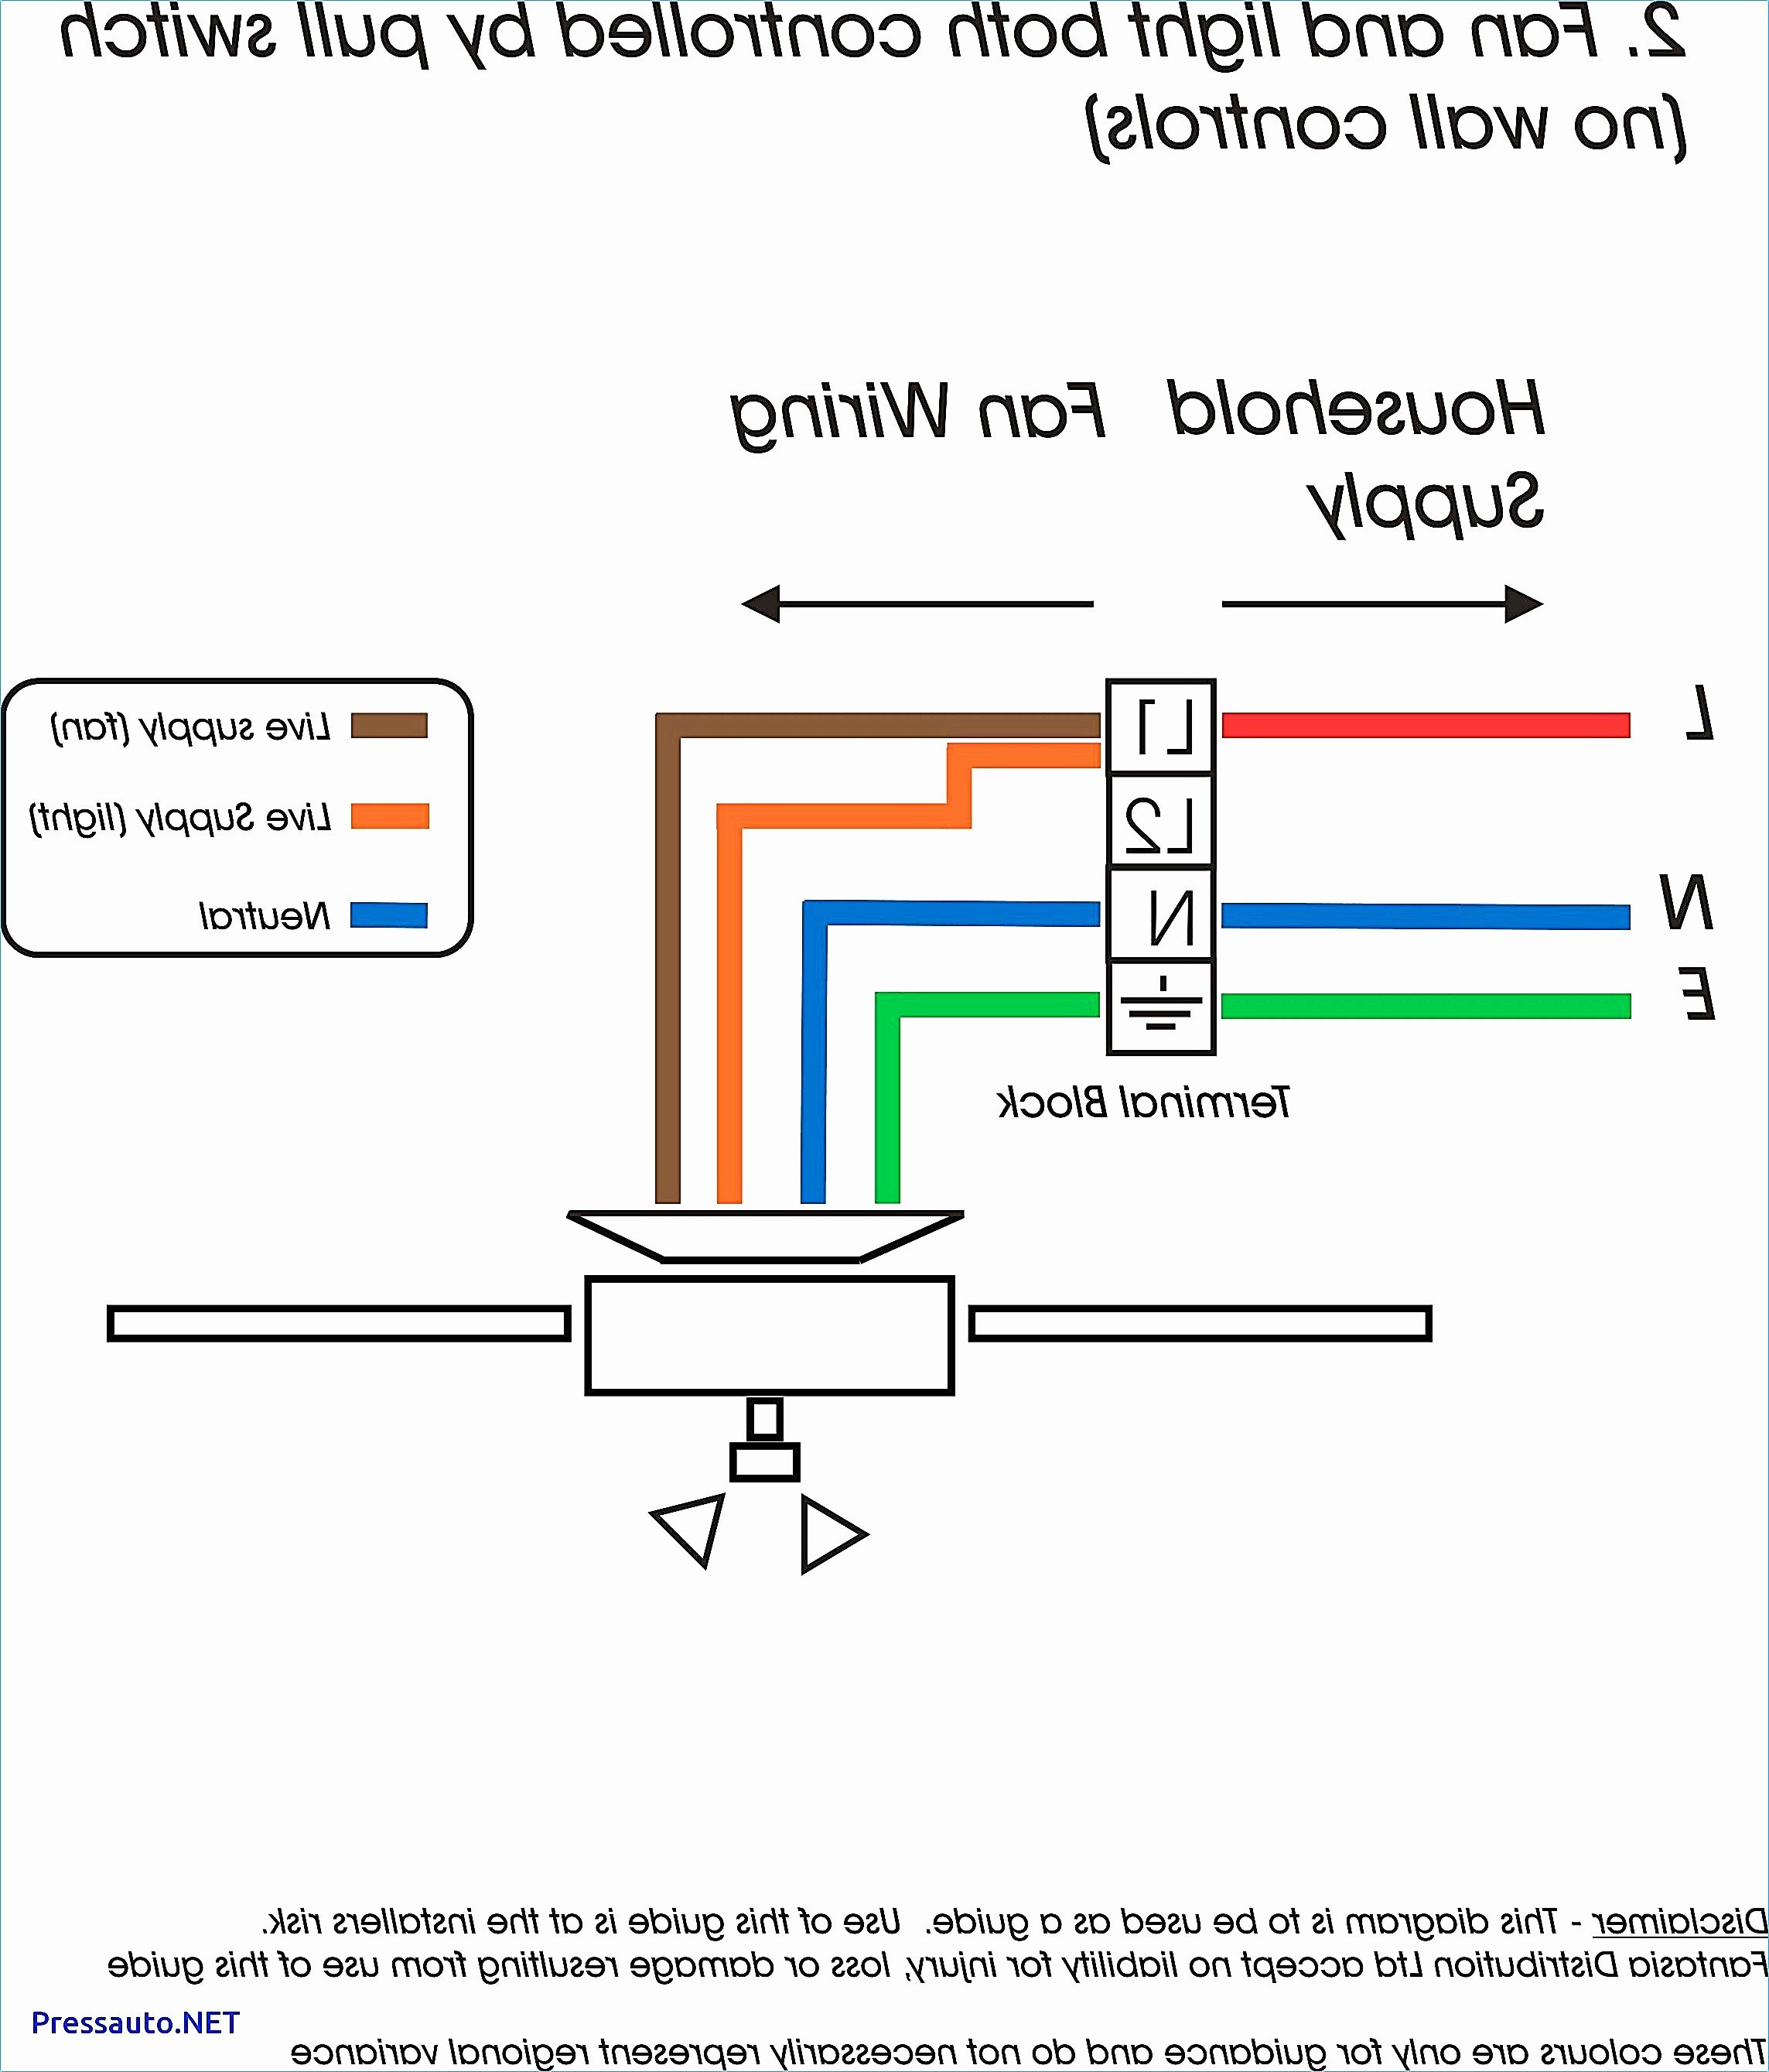 electric baseboard wiring diagram Collection-Wiring Diagram For Electric Baseboard Heater New Wiring Diagram 240v Baseboard Heater Thermostat Best Baseboard 5-h